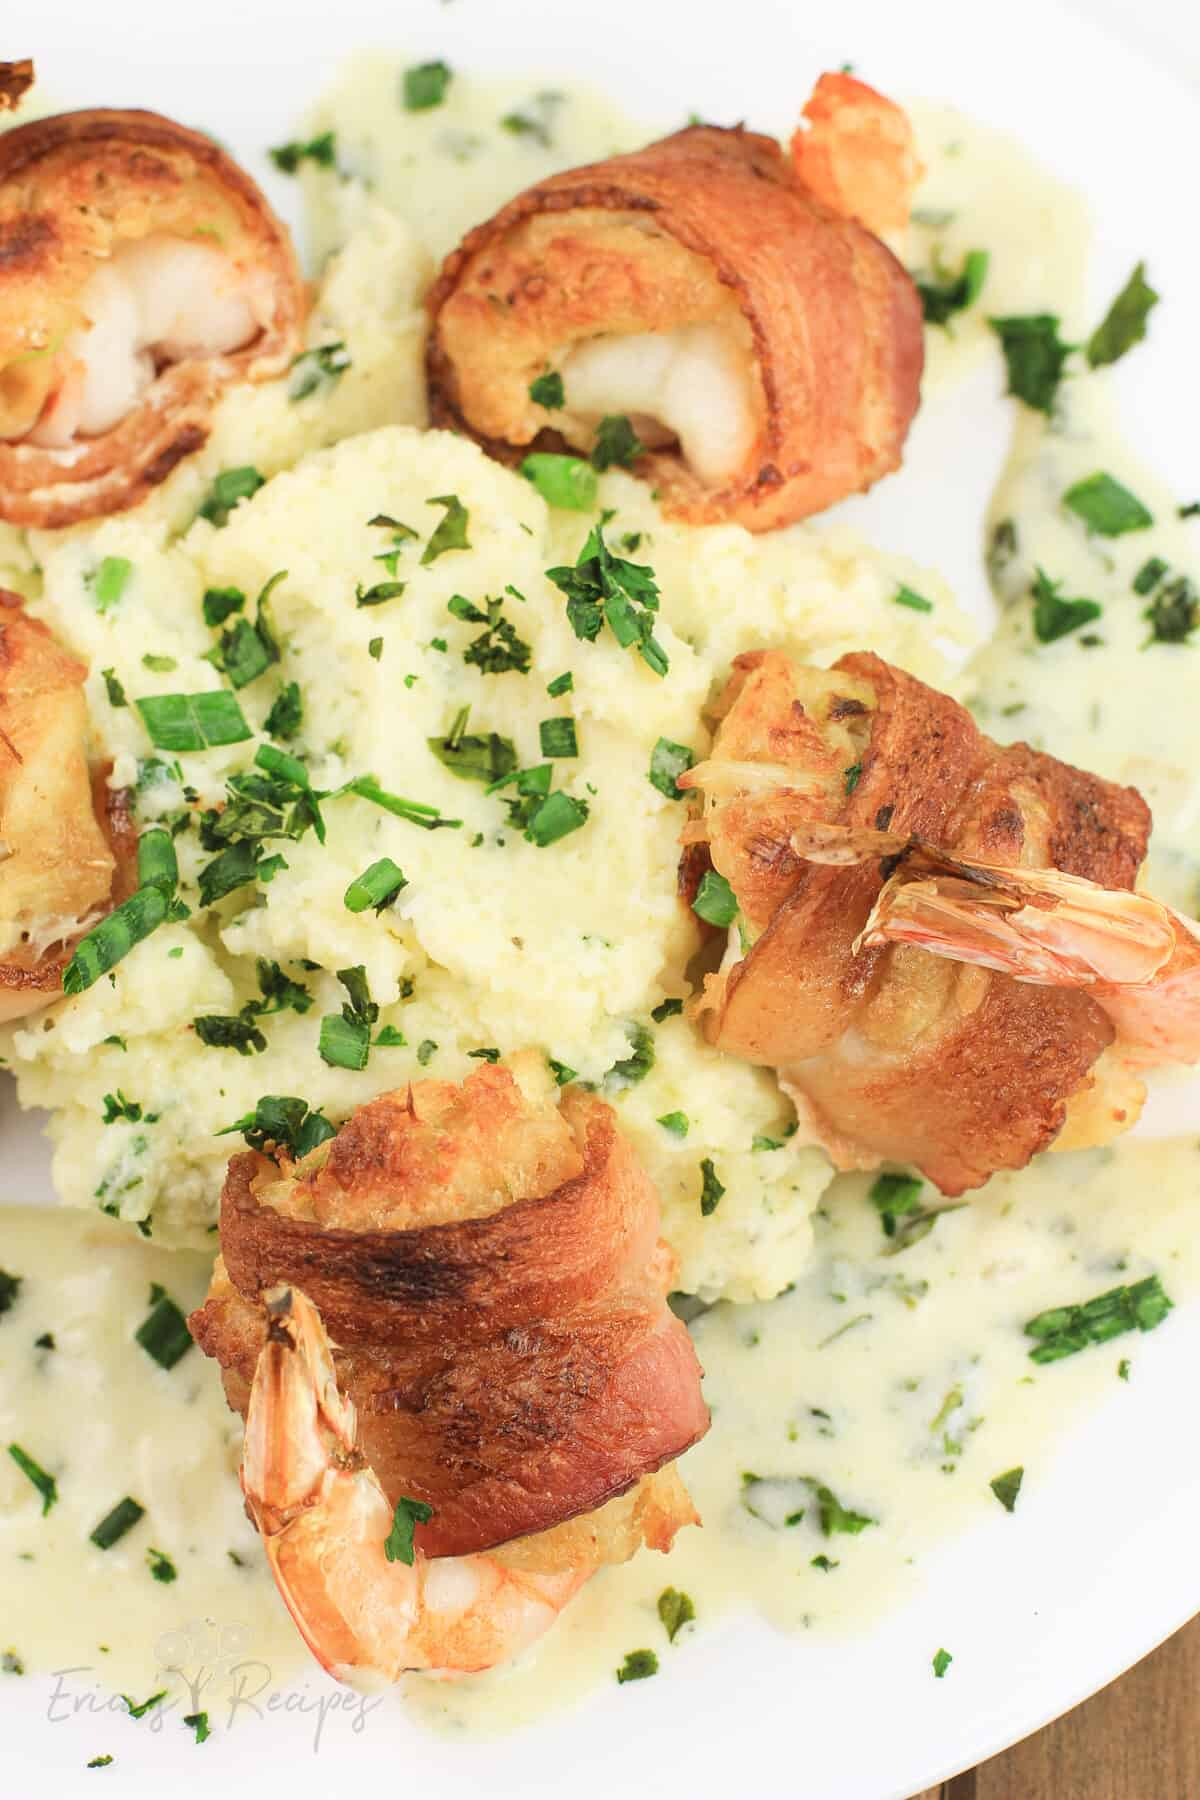 bacon wrapped shrimp on white plate with mashed potatoes